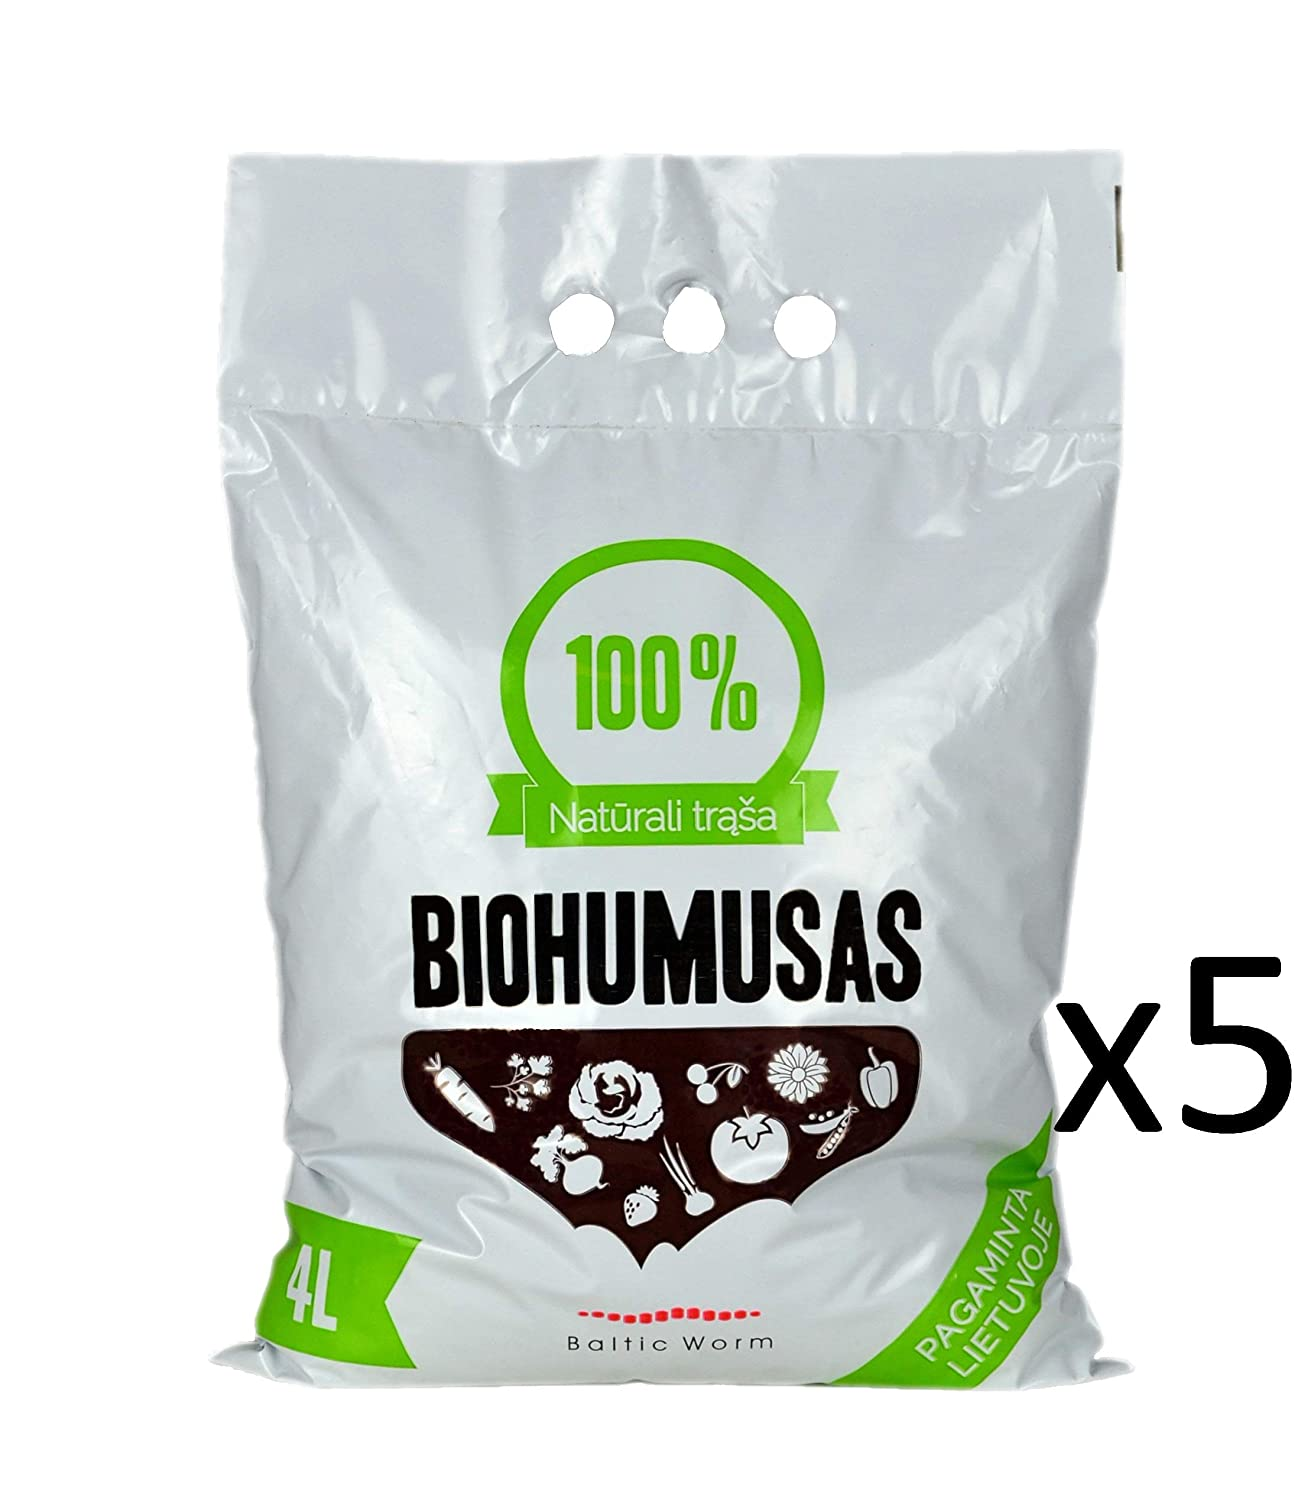 Organic Fertiliser - Pure Worm Castings by Baltic Worm | Multi Purpose Natural Fertilizer- Vermicompost, Soil Builder, Worm Humus by Red Wigglers 4 Litres Baltic Worm Ltd.